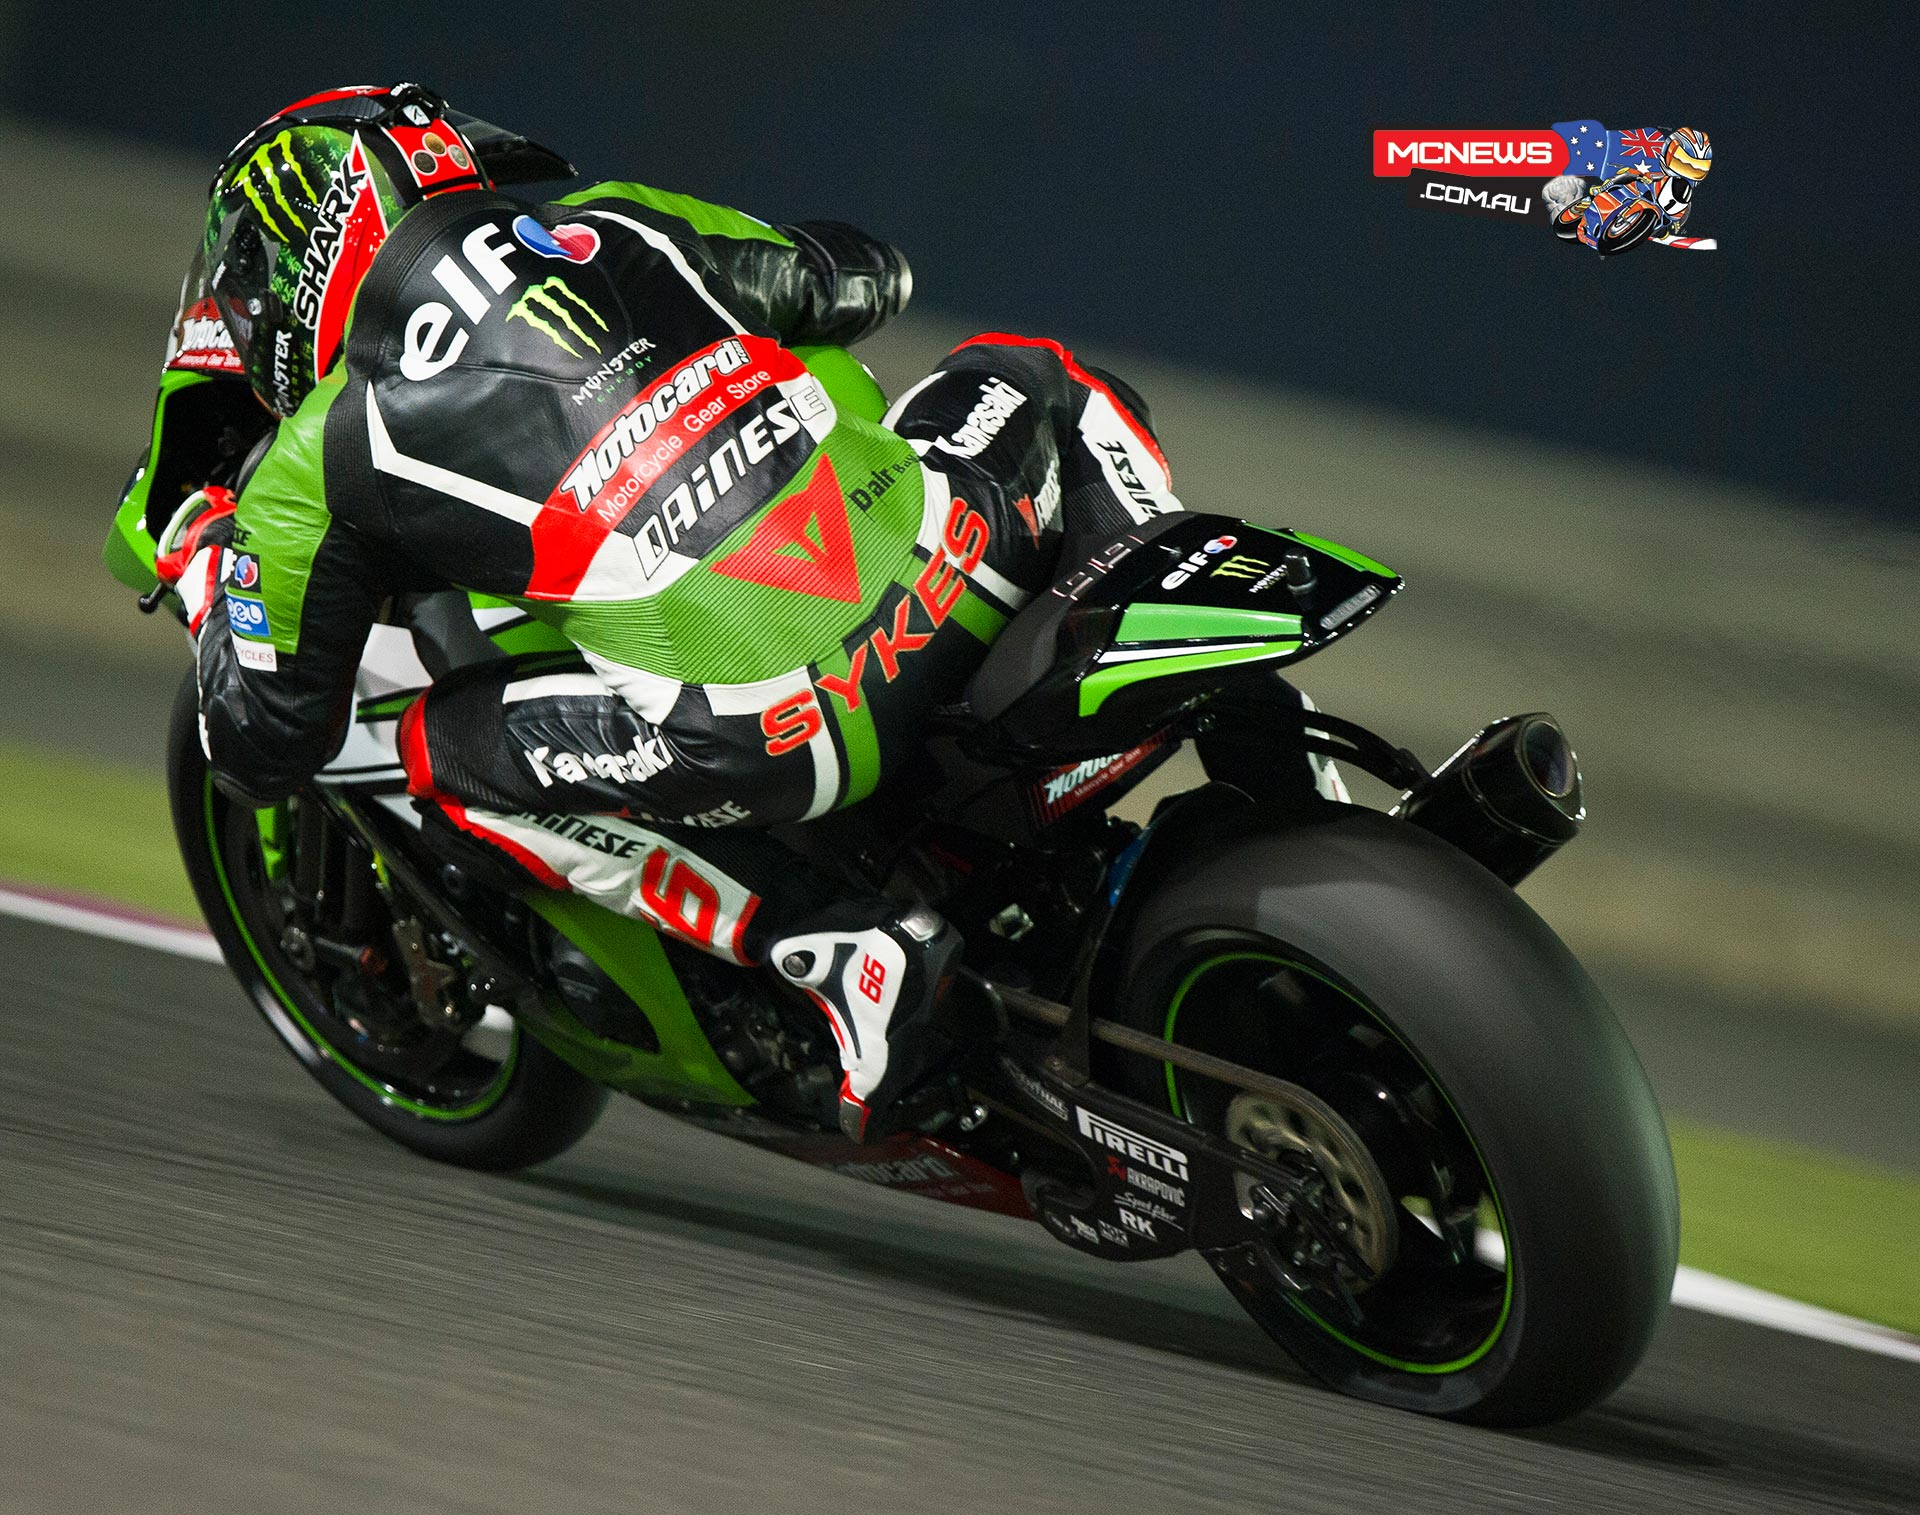 WorldSBK 2015 Qatar - Qualifying - Tom Sykes